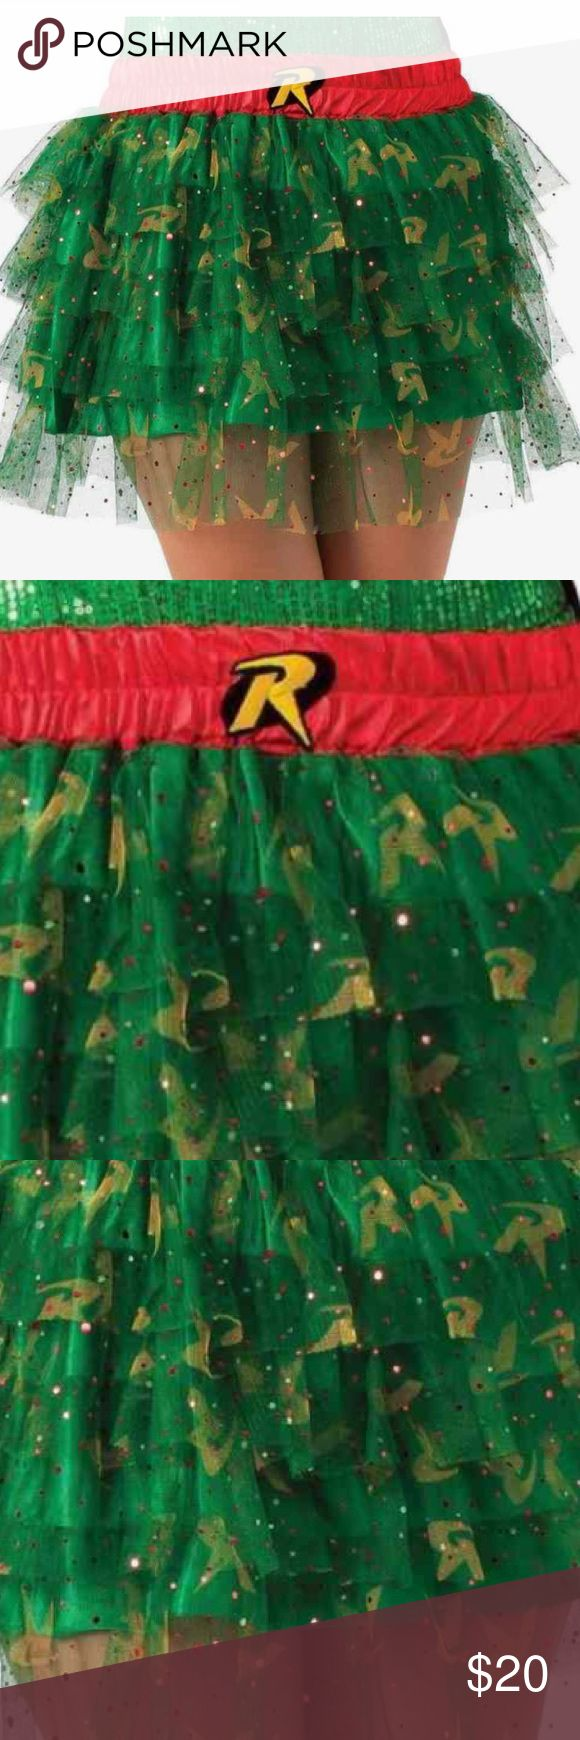 "Robin Tutu Skirt Batman Superhero Fancy Dress Robin Tutu Skirt Batman Superhero Fancy Dress Halloween Adult Costume Accessory   DESCRIPTION:  DC Comics ""Robin Tutu Skirt"" Adult Costume  Rubie's Costume Company Item # 887913/# 35079  Sizes Available: TEEN - STANDARD  This costume is new in its original package. It is part of the ""DC Comics"" line produced by Rubie's Costume Company. Keep in mind that packaged costumes tend to run slightly small...  This costume includes the following:  Sequin…"